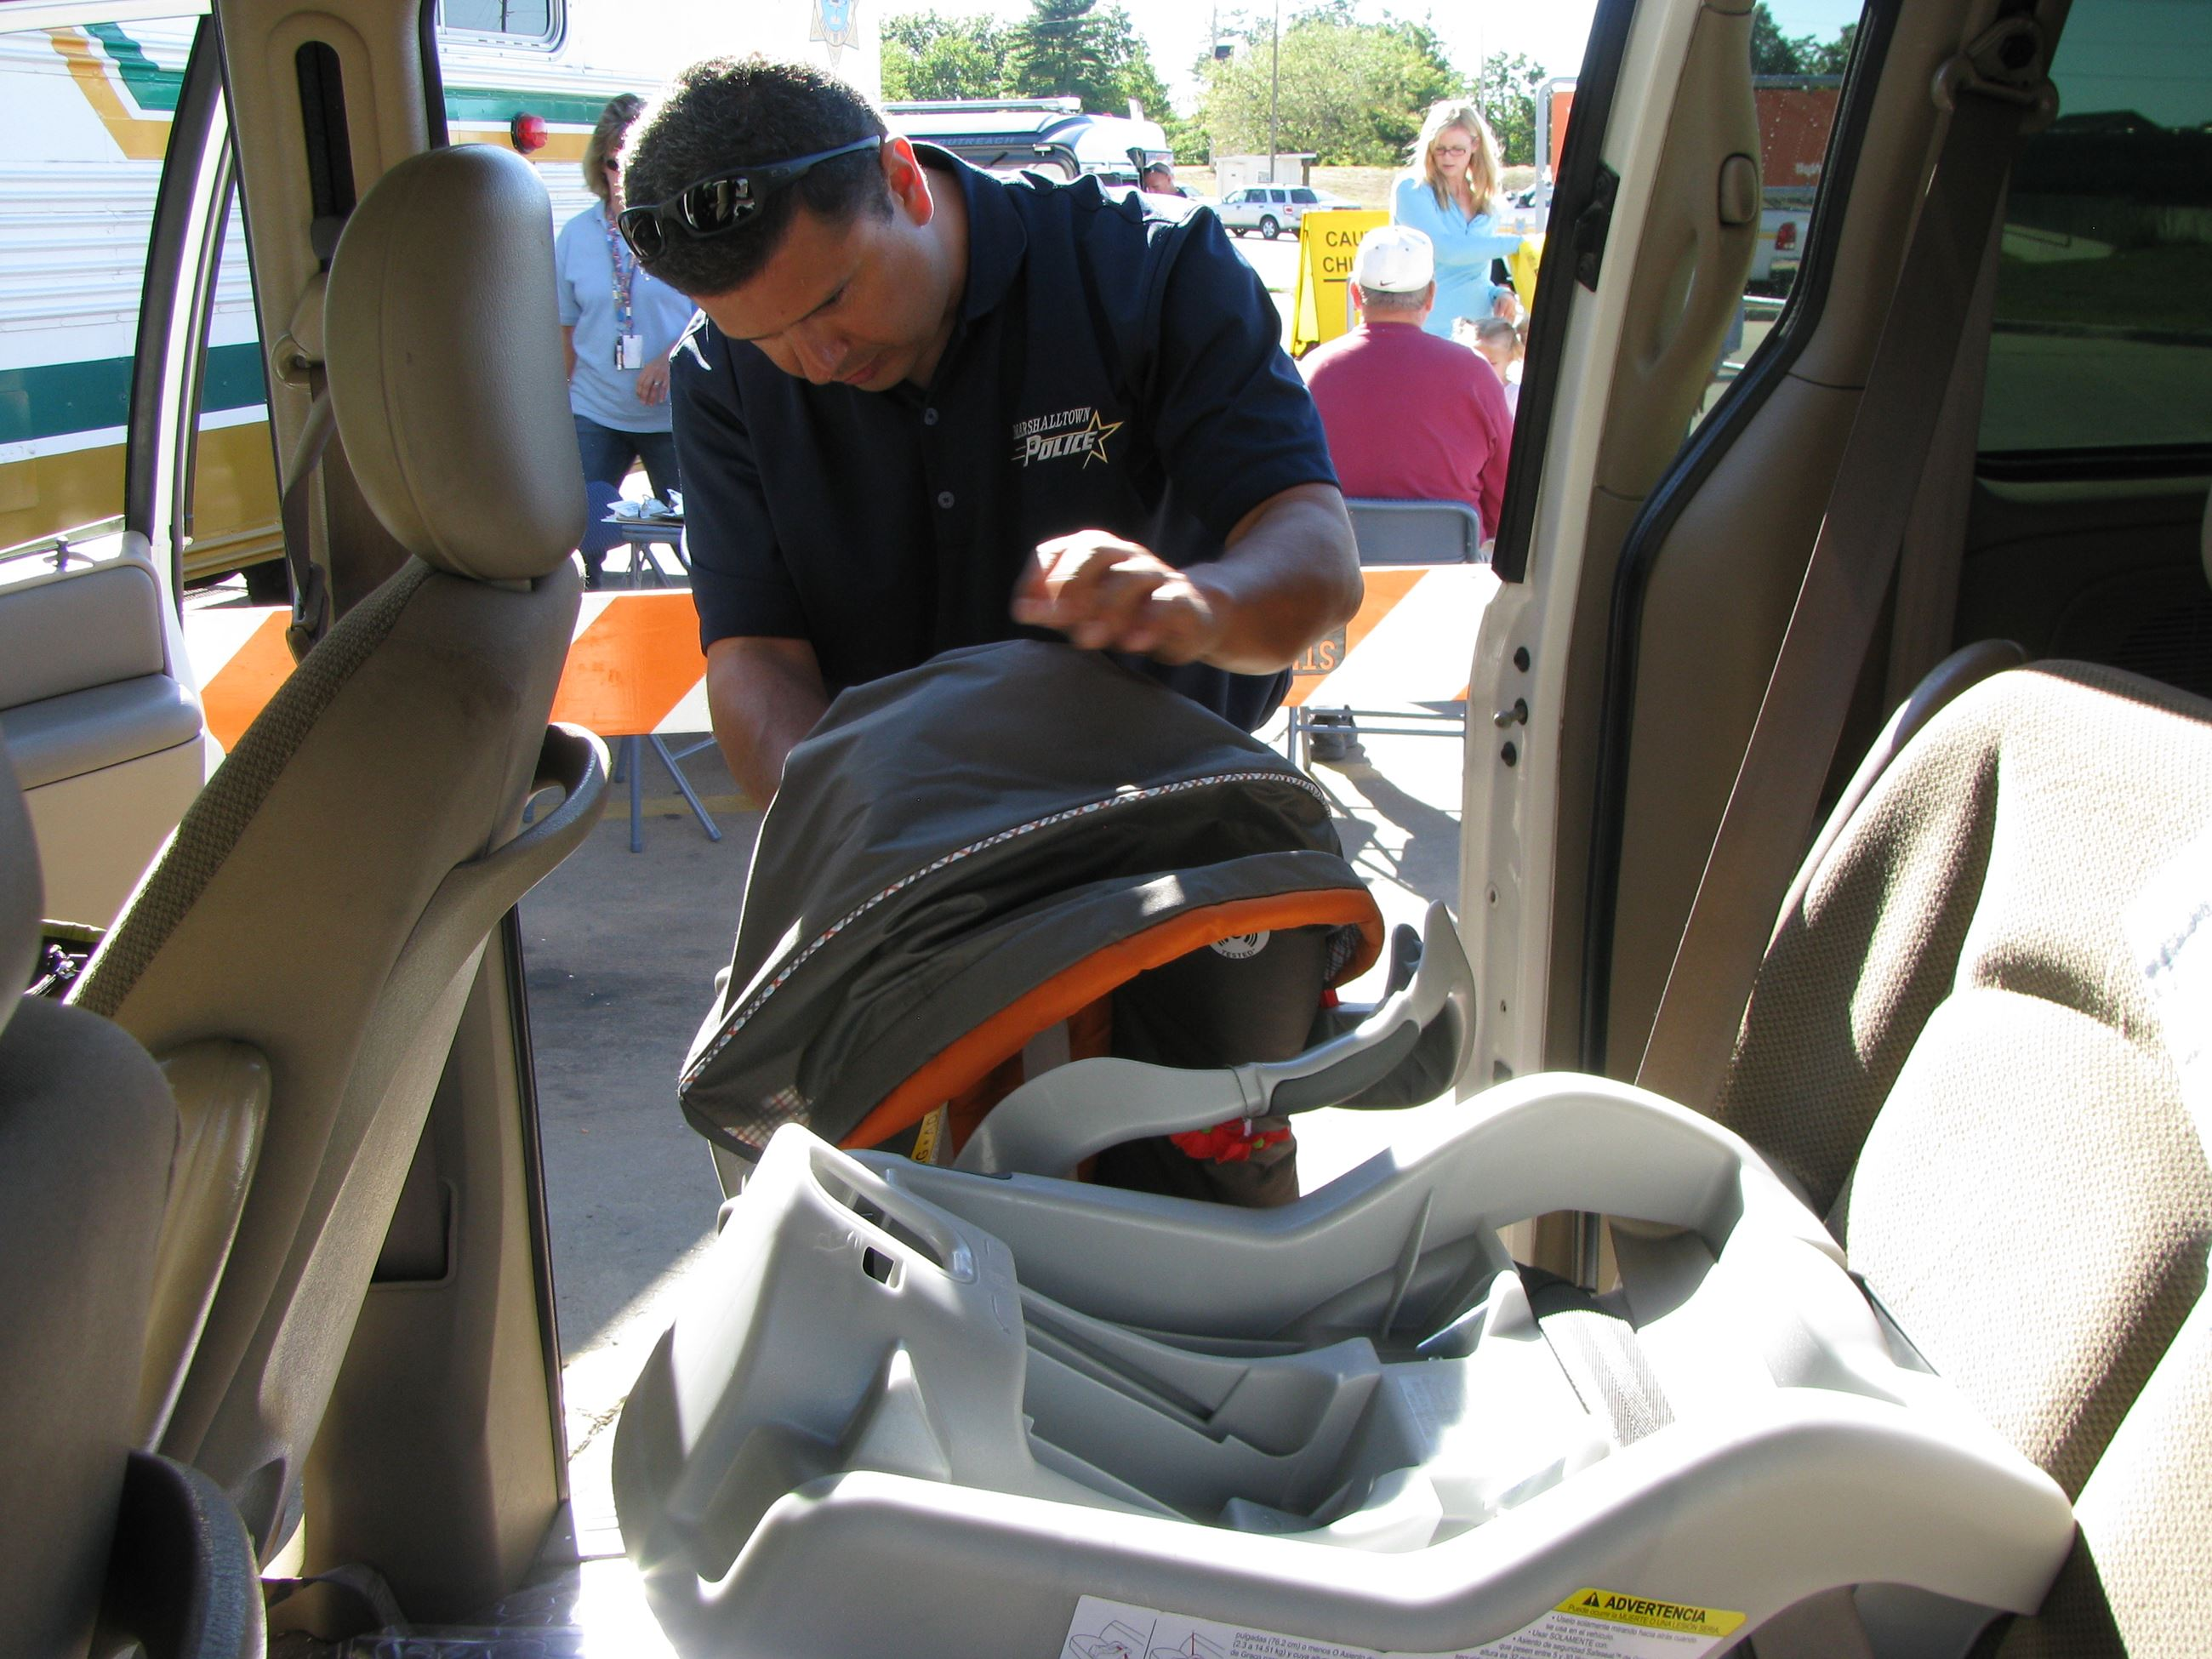 Child Seat Inspection